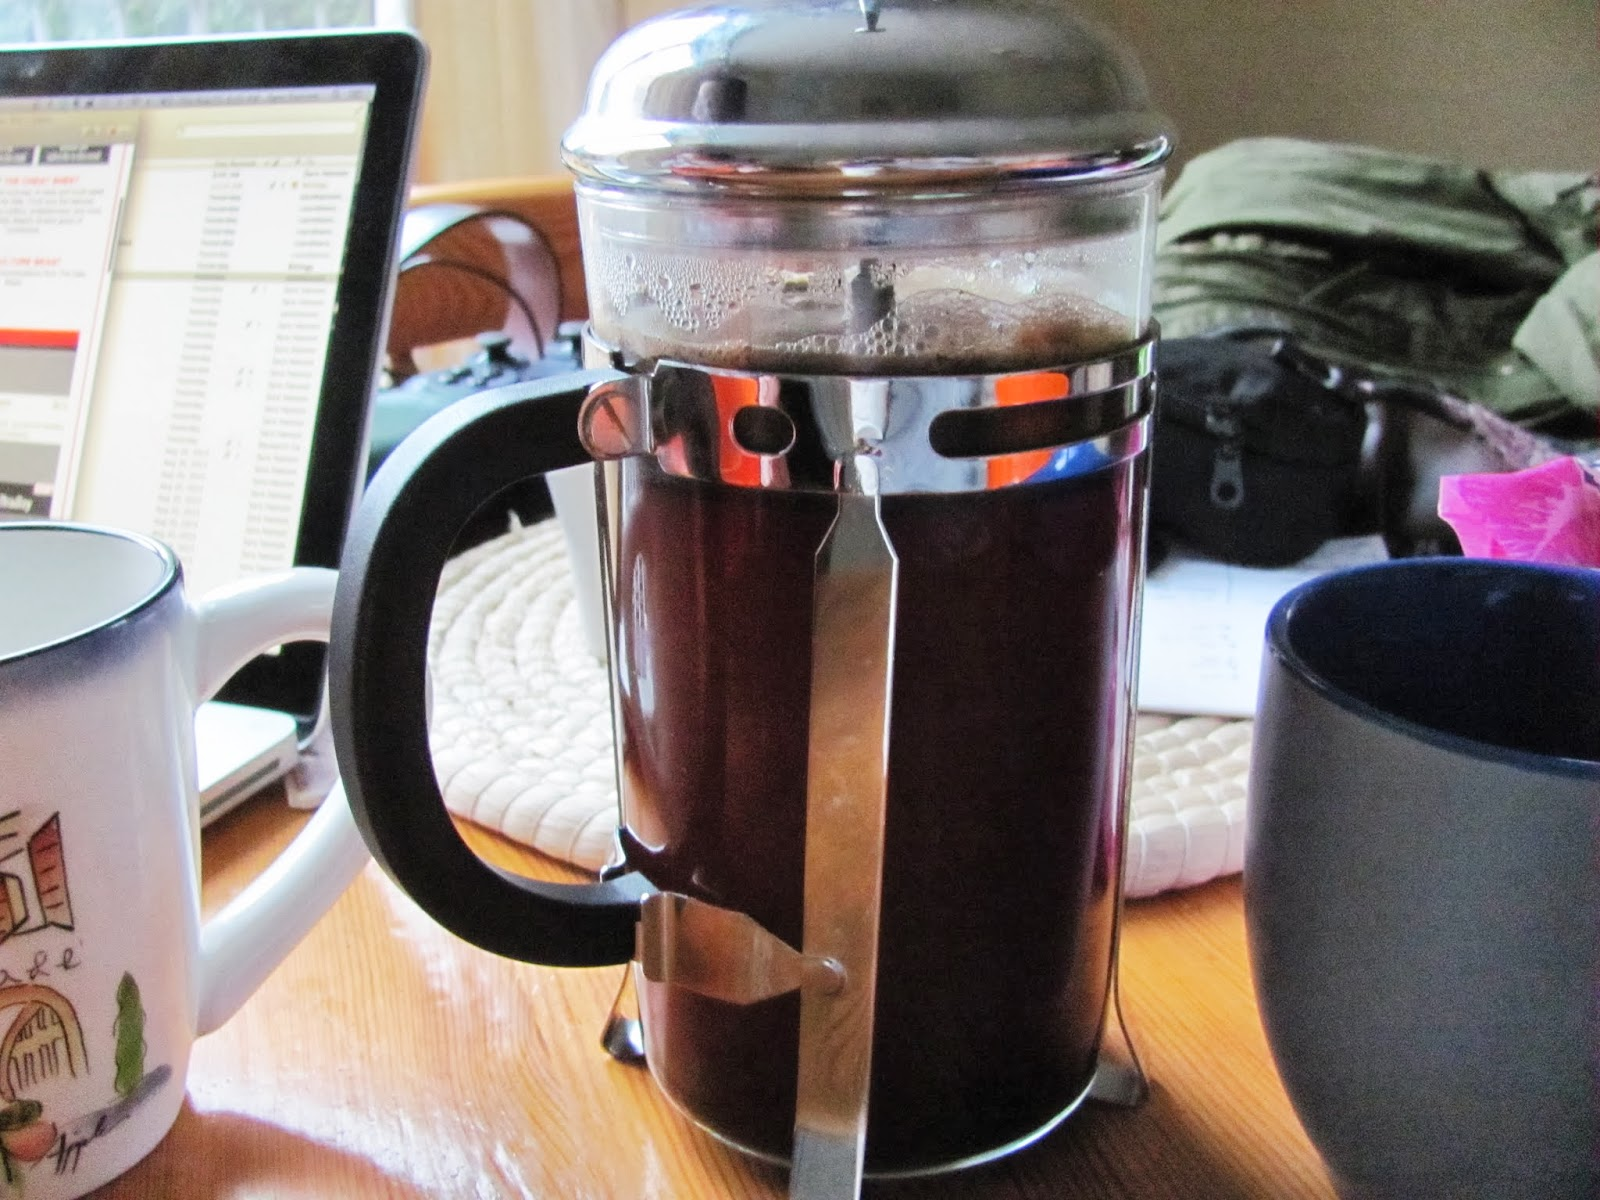 A cafetiere French press coffee maker is full on the table in Dublin, Ireland